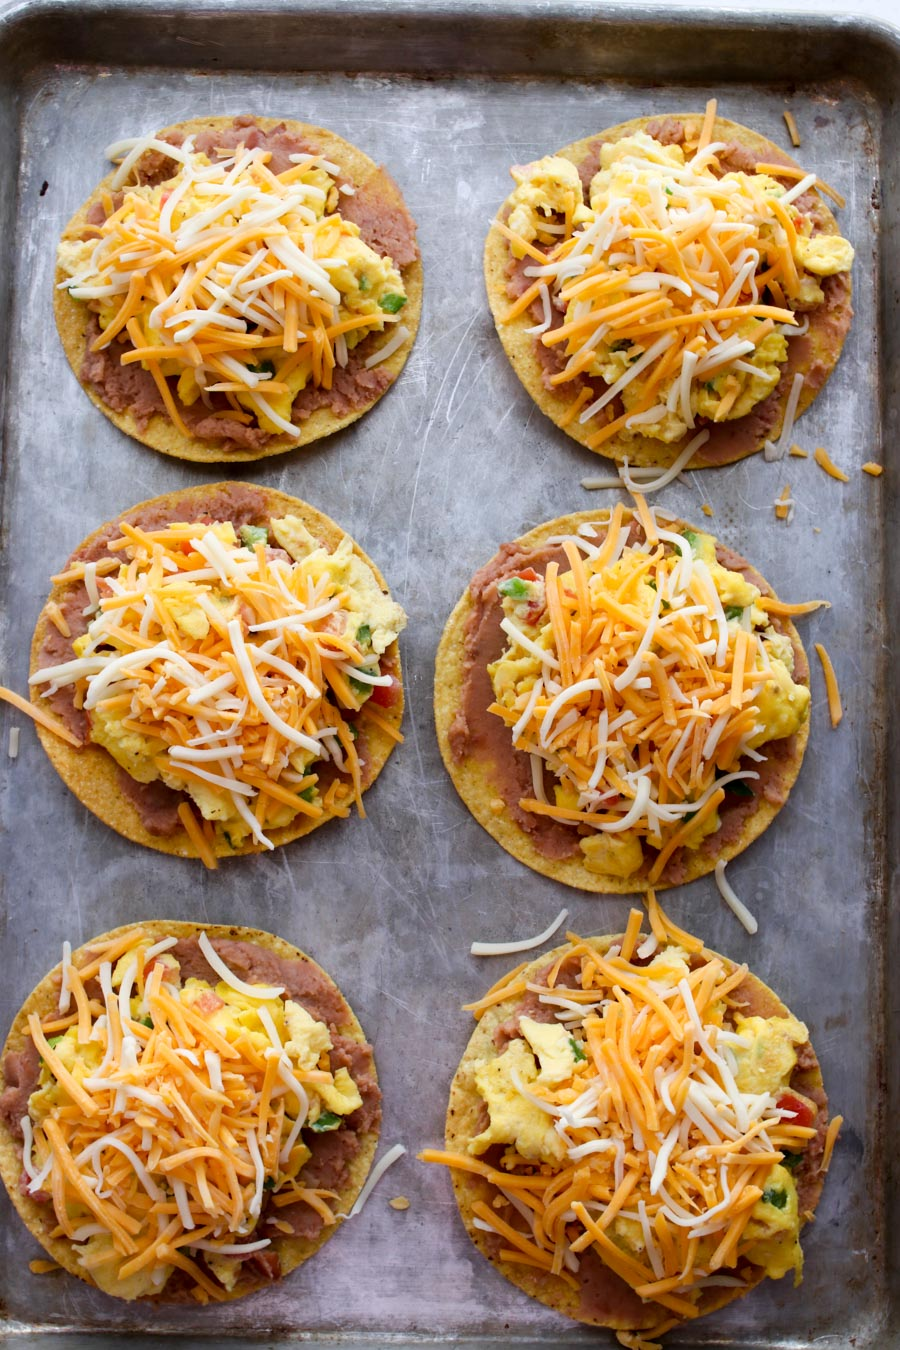 tostadas with beans, scrambled eggs, shredded cheese